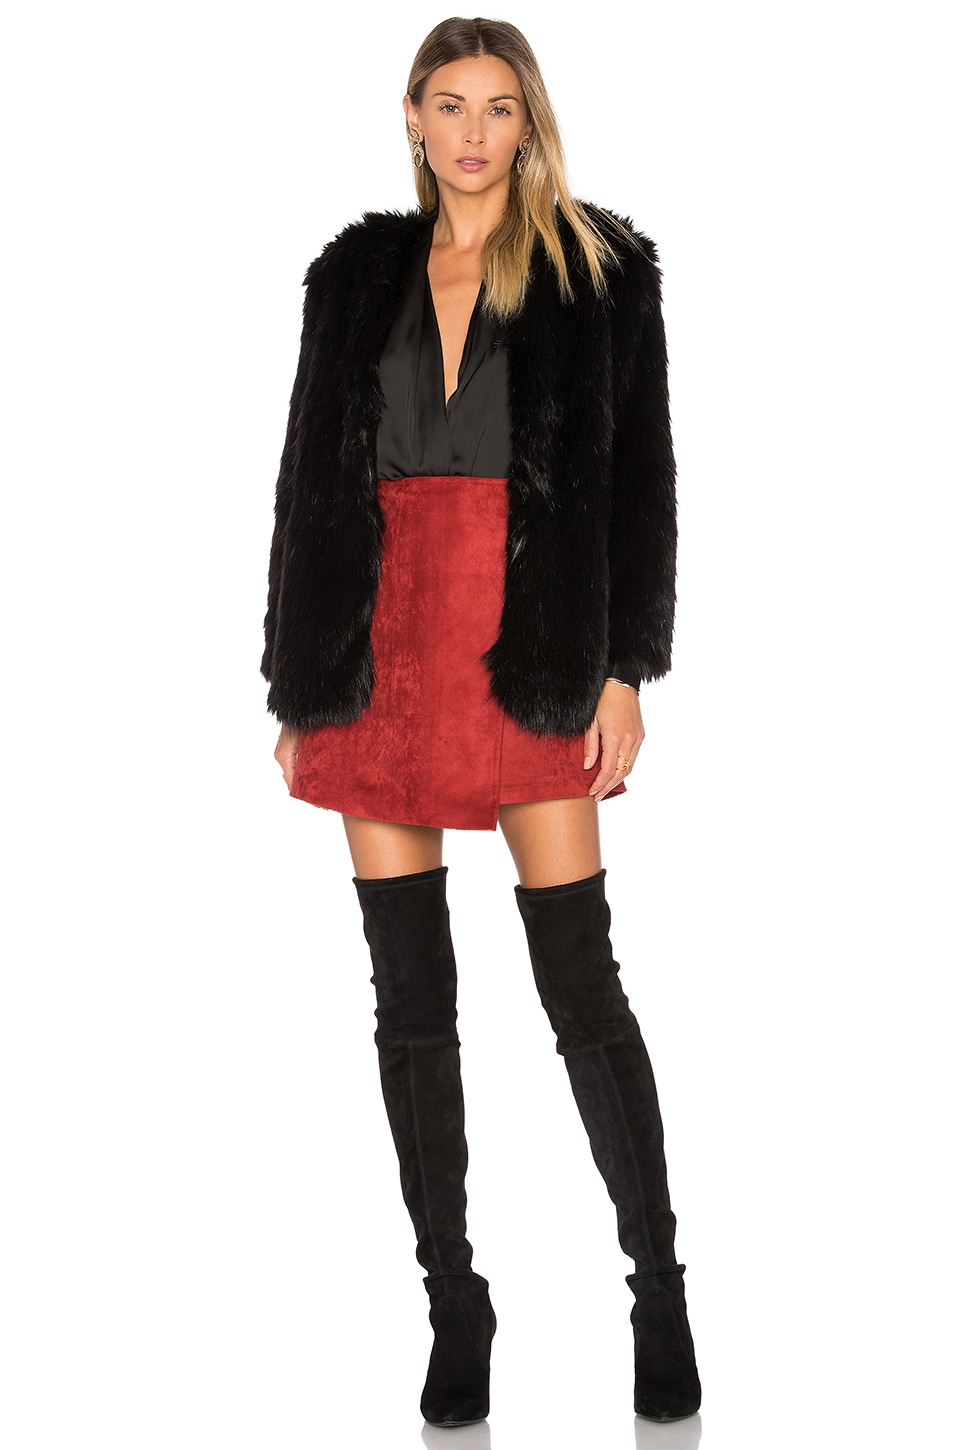 Lovers + Friends Adora Faux Fur Jacket in Black